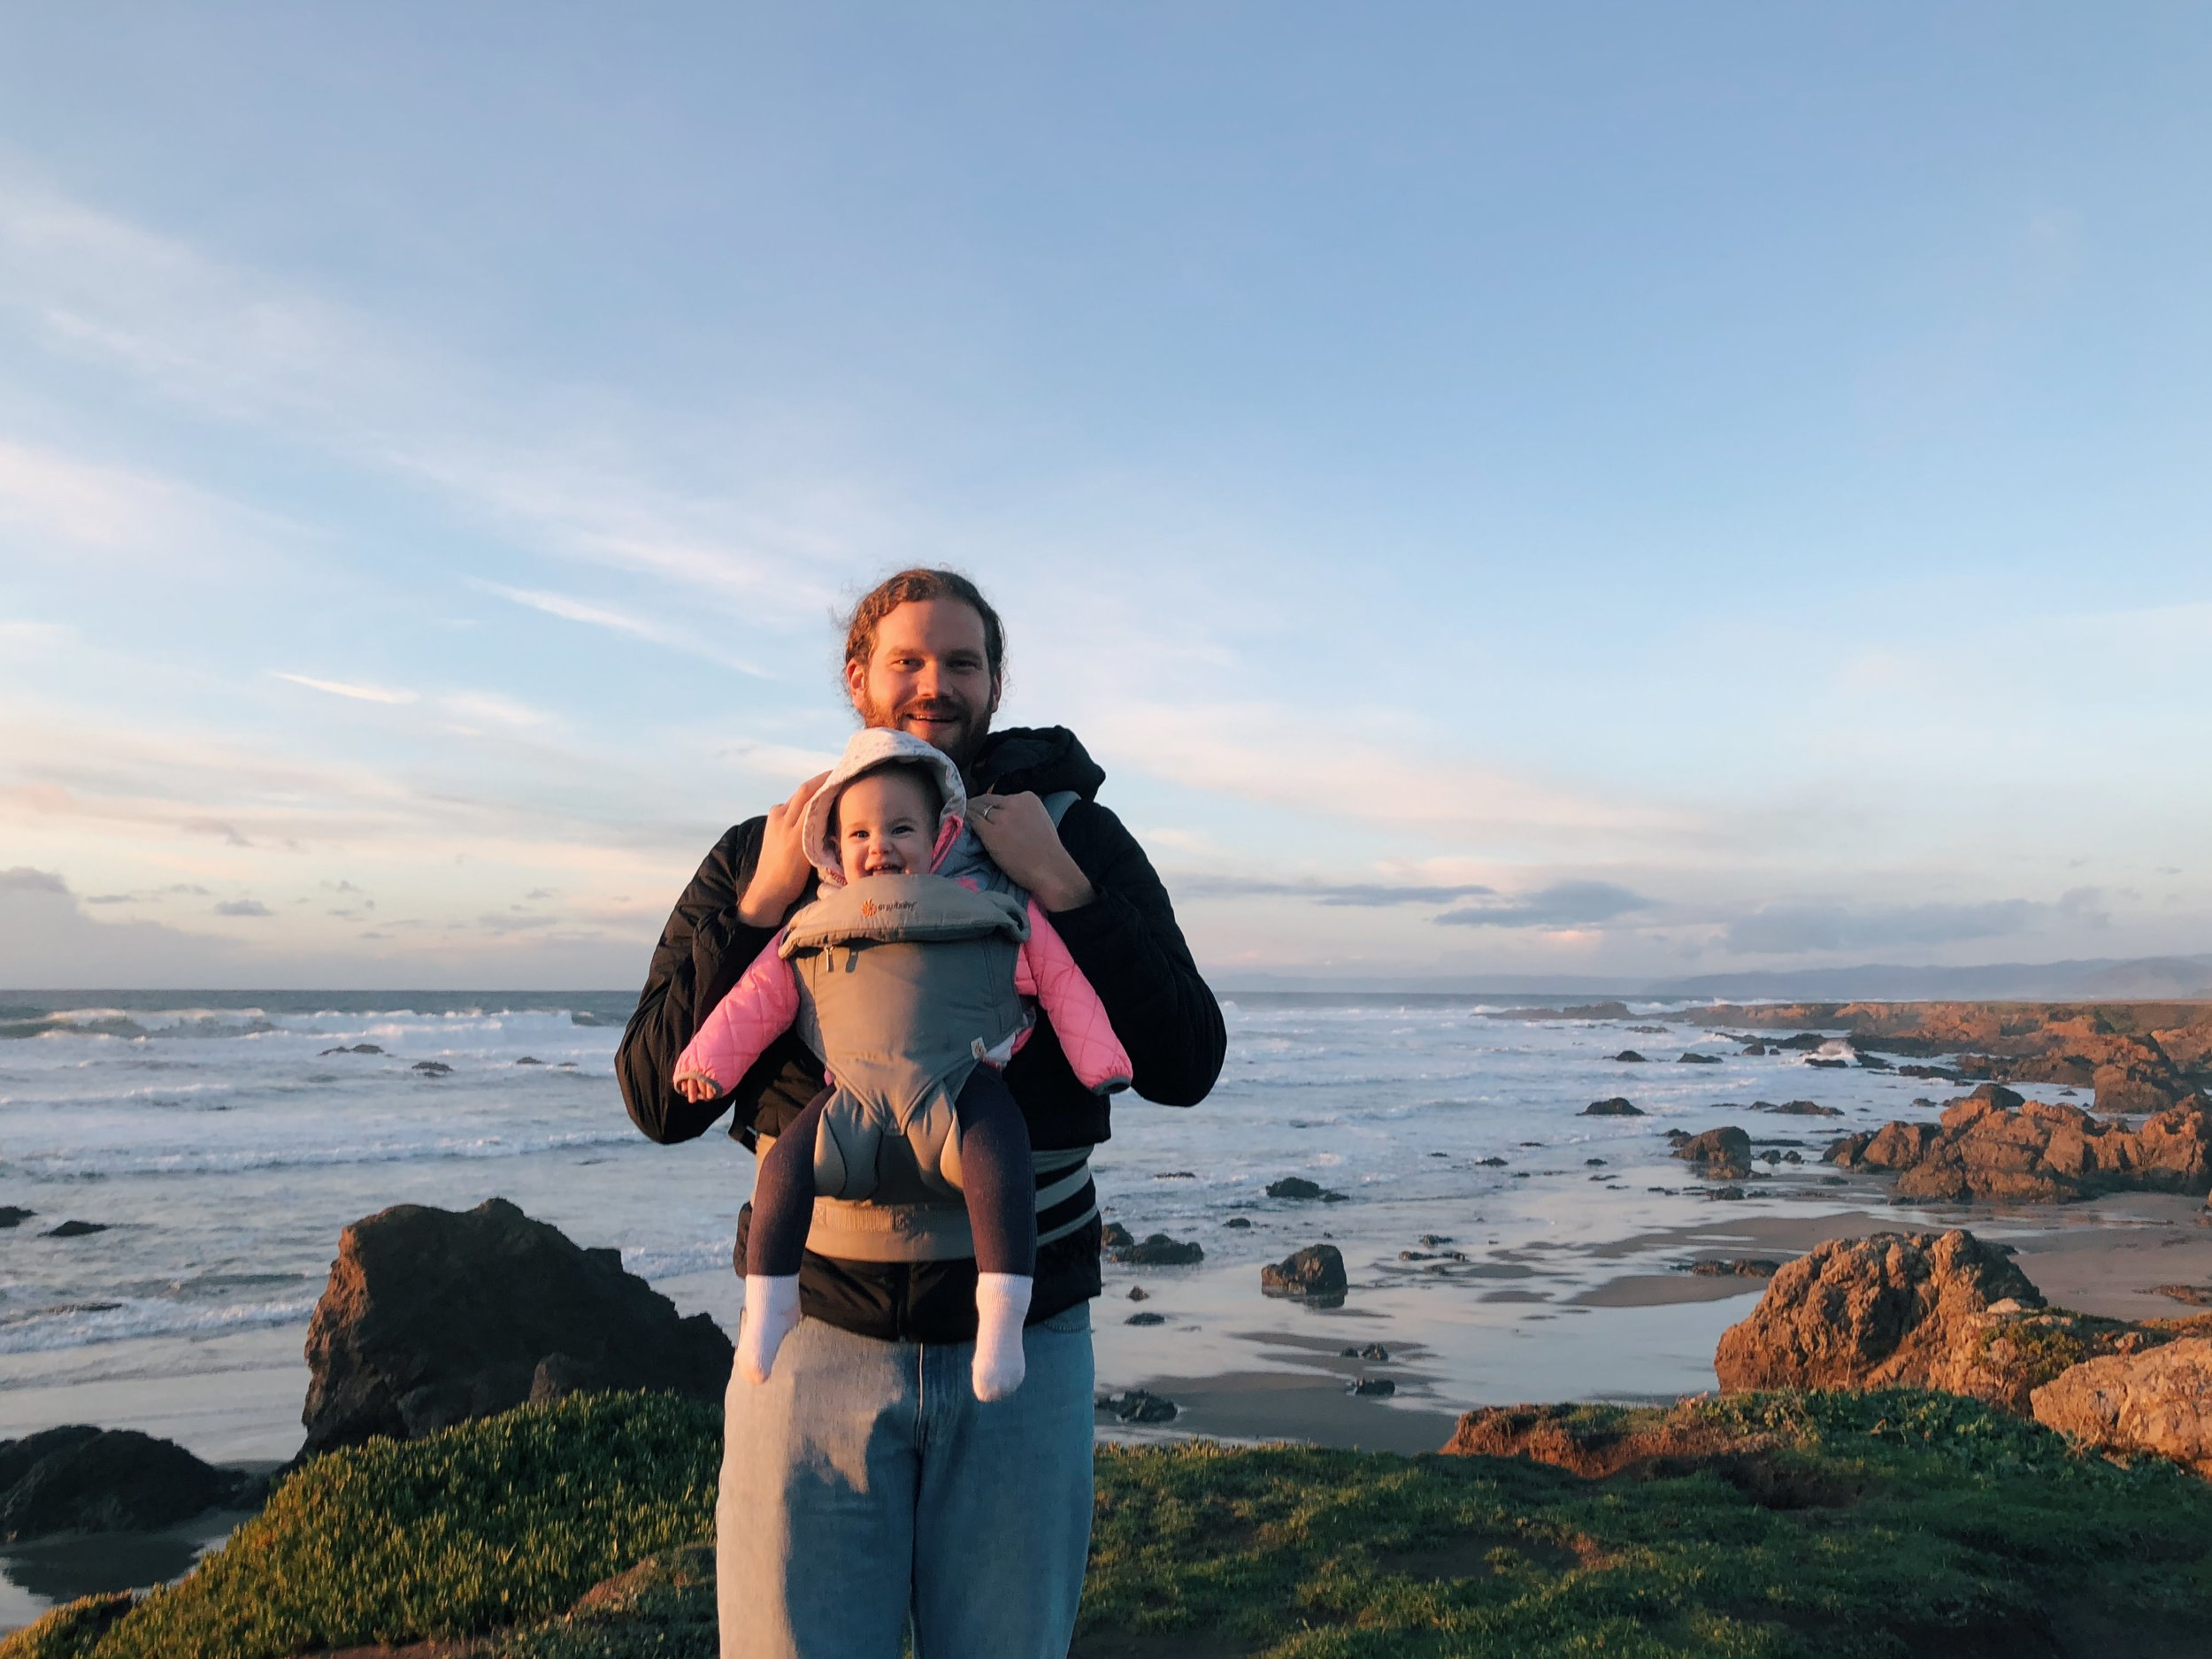 the-curiosity-project-blog-mendocino-road-trip-with-kids-1.jpg